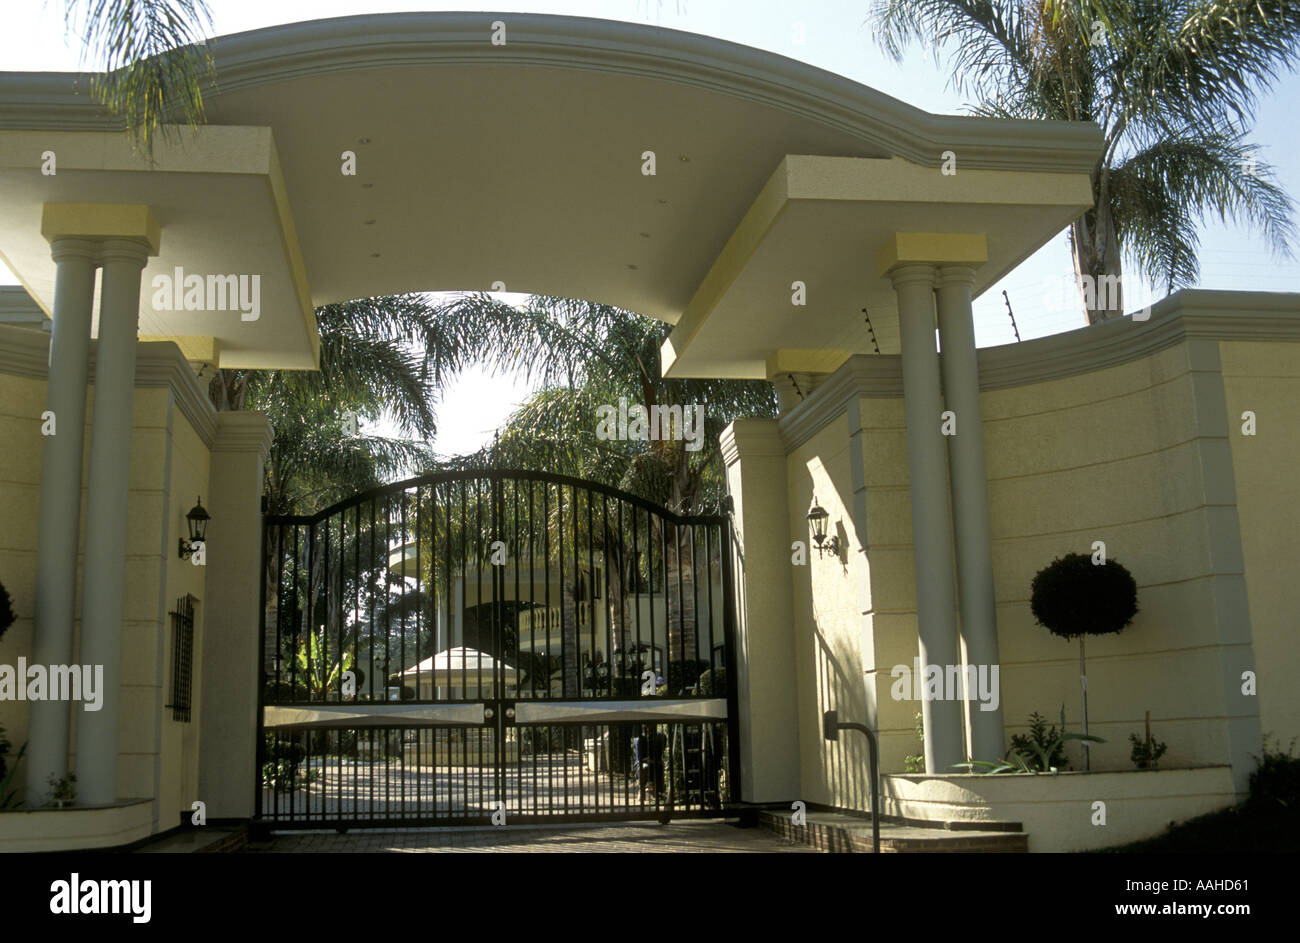 Luxury Home Entrance Imposing Wrought Iron Entrance Gates To Luxury Home In